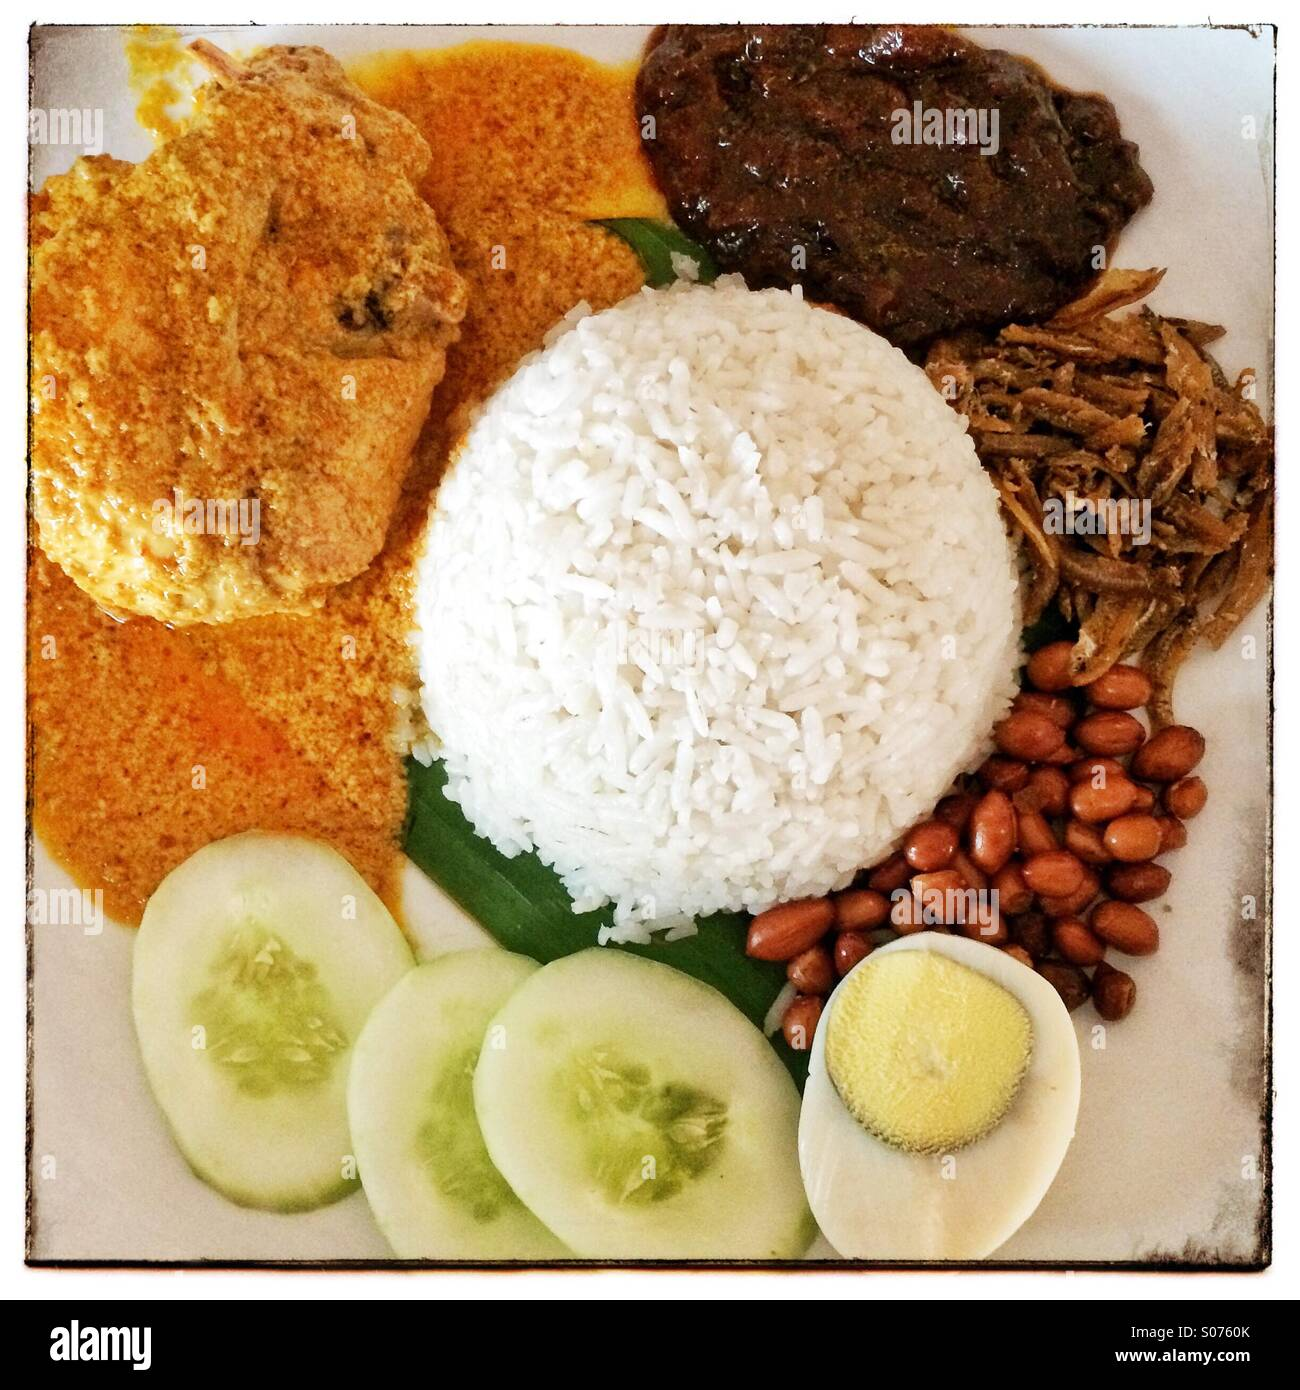 Malaysian Nasi Lemak coconut rice with curry chicken, egg, fried anchovies, cucumber, peanuts and sambal - Stock Image